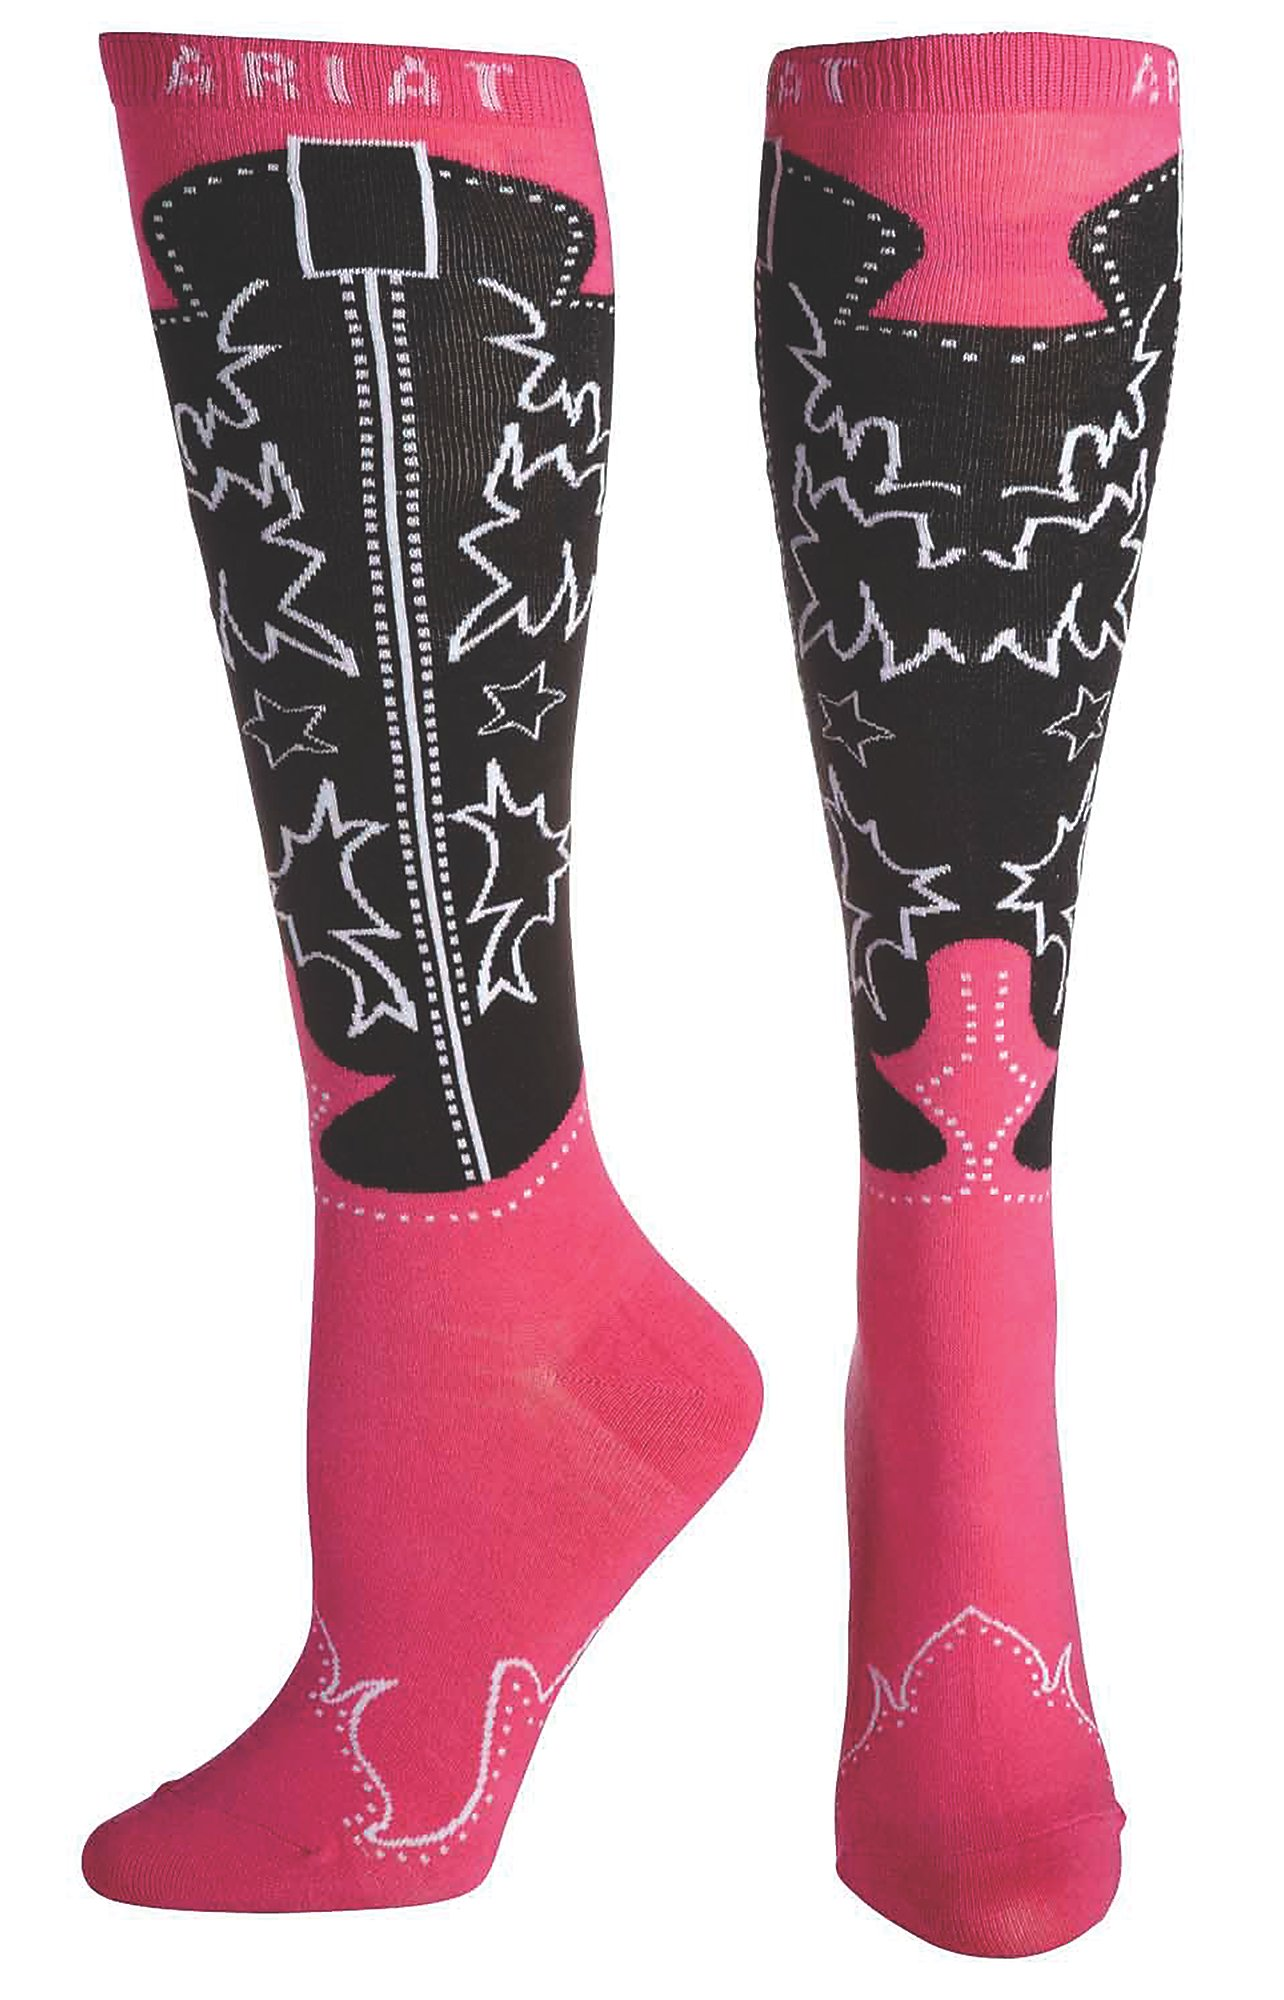 Ariat Women's Pink and Black Western Boot Knee High Socks | Cavender's